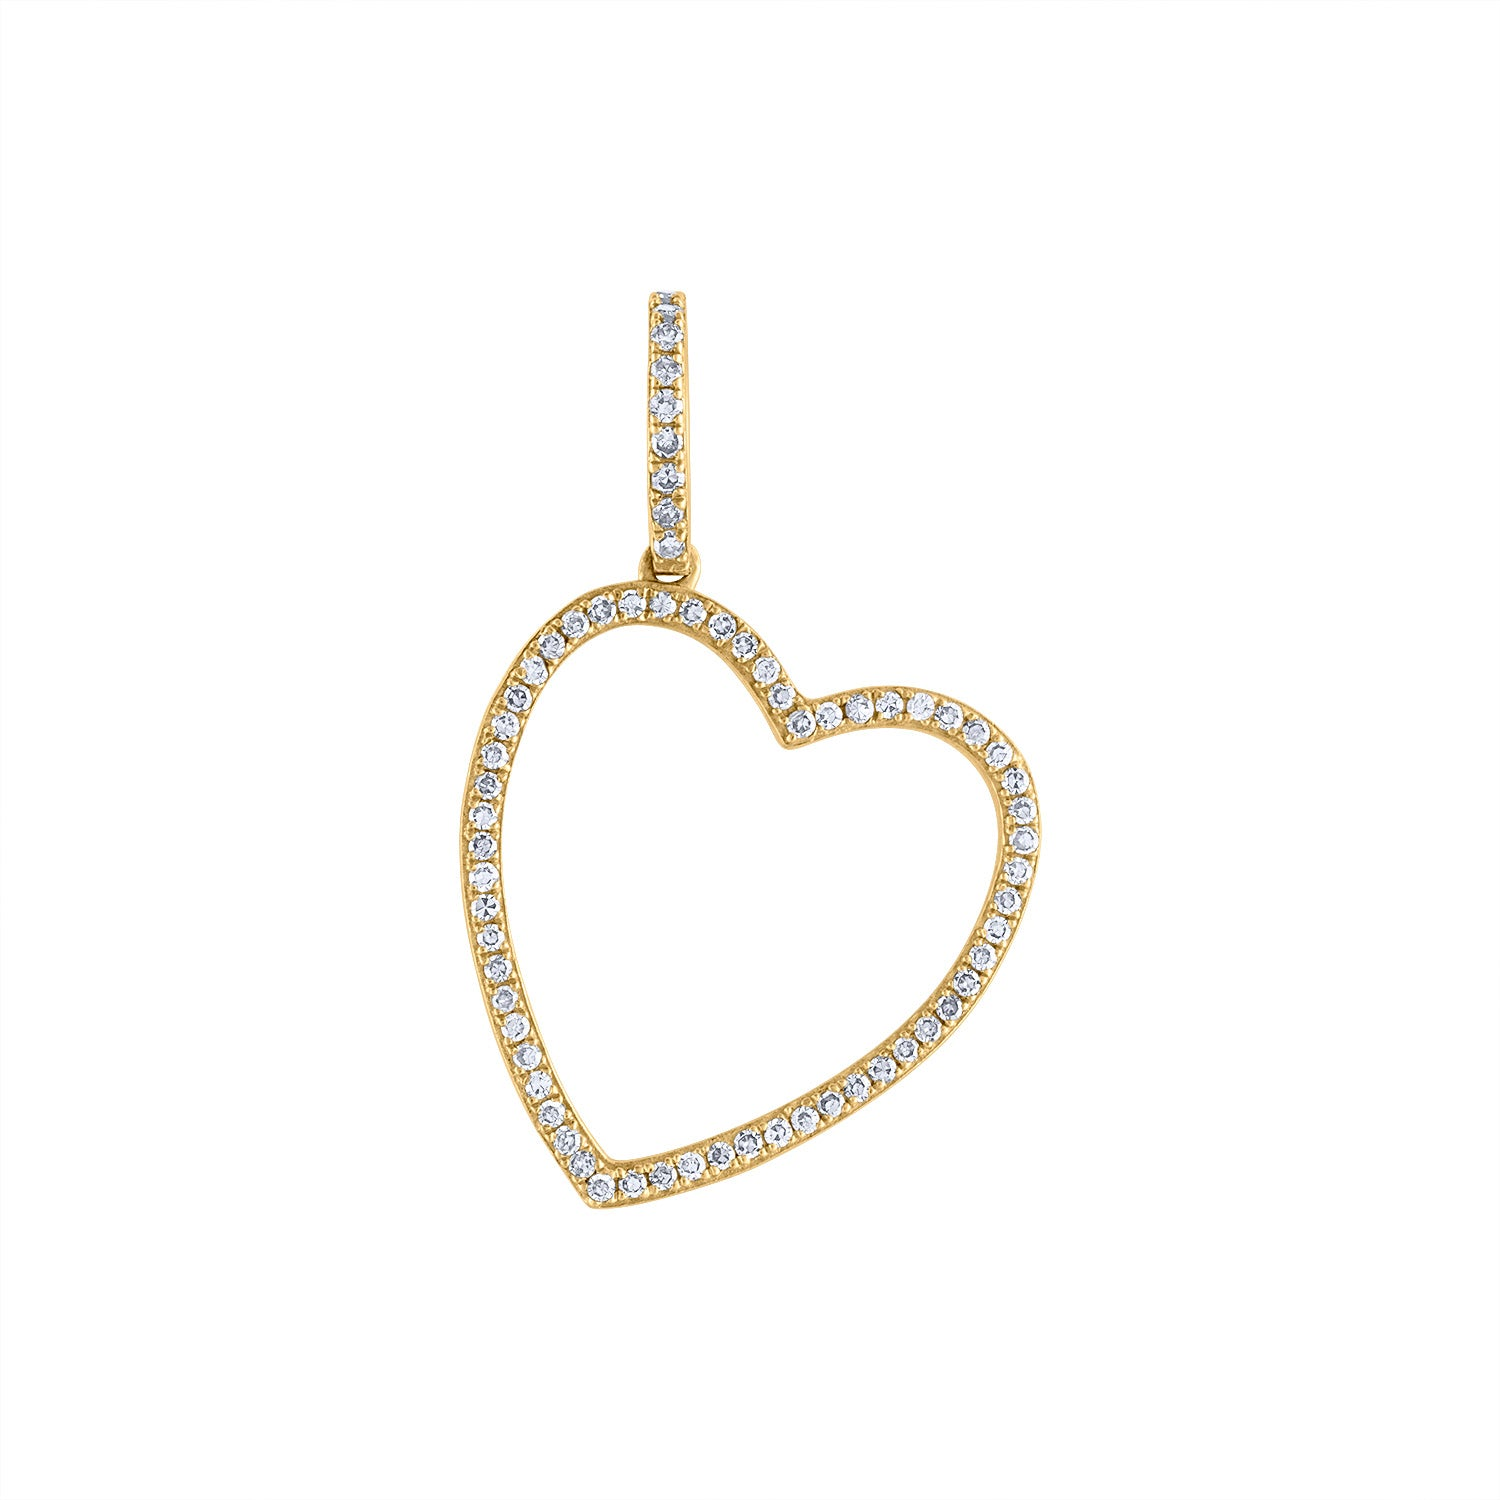 14KT YELLOW GOLD DIAMOND OUTLINE HEART CHARM